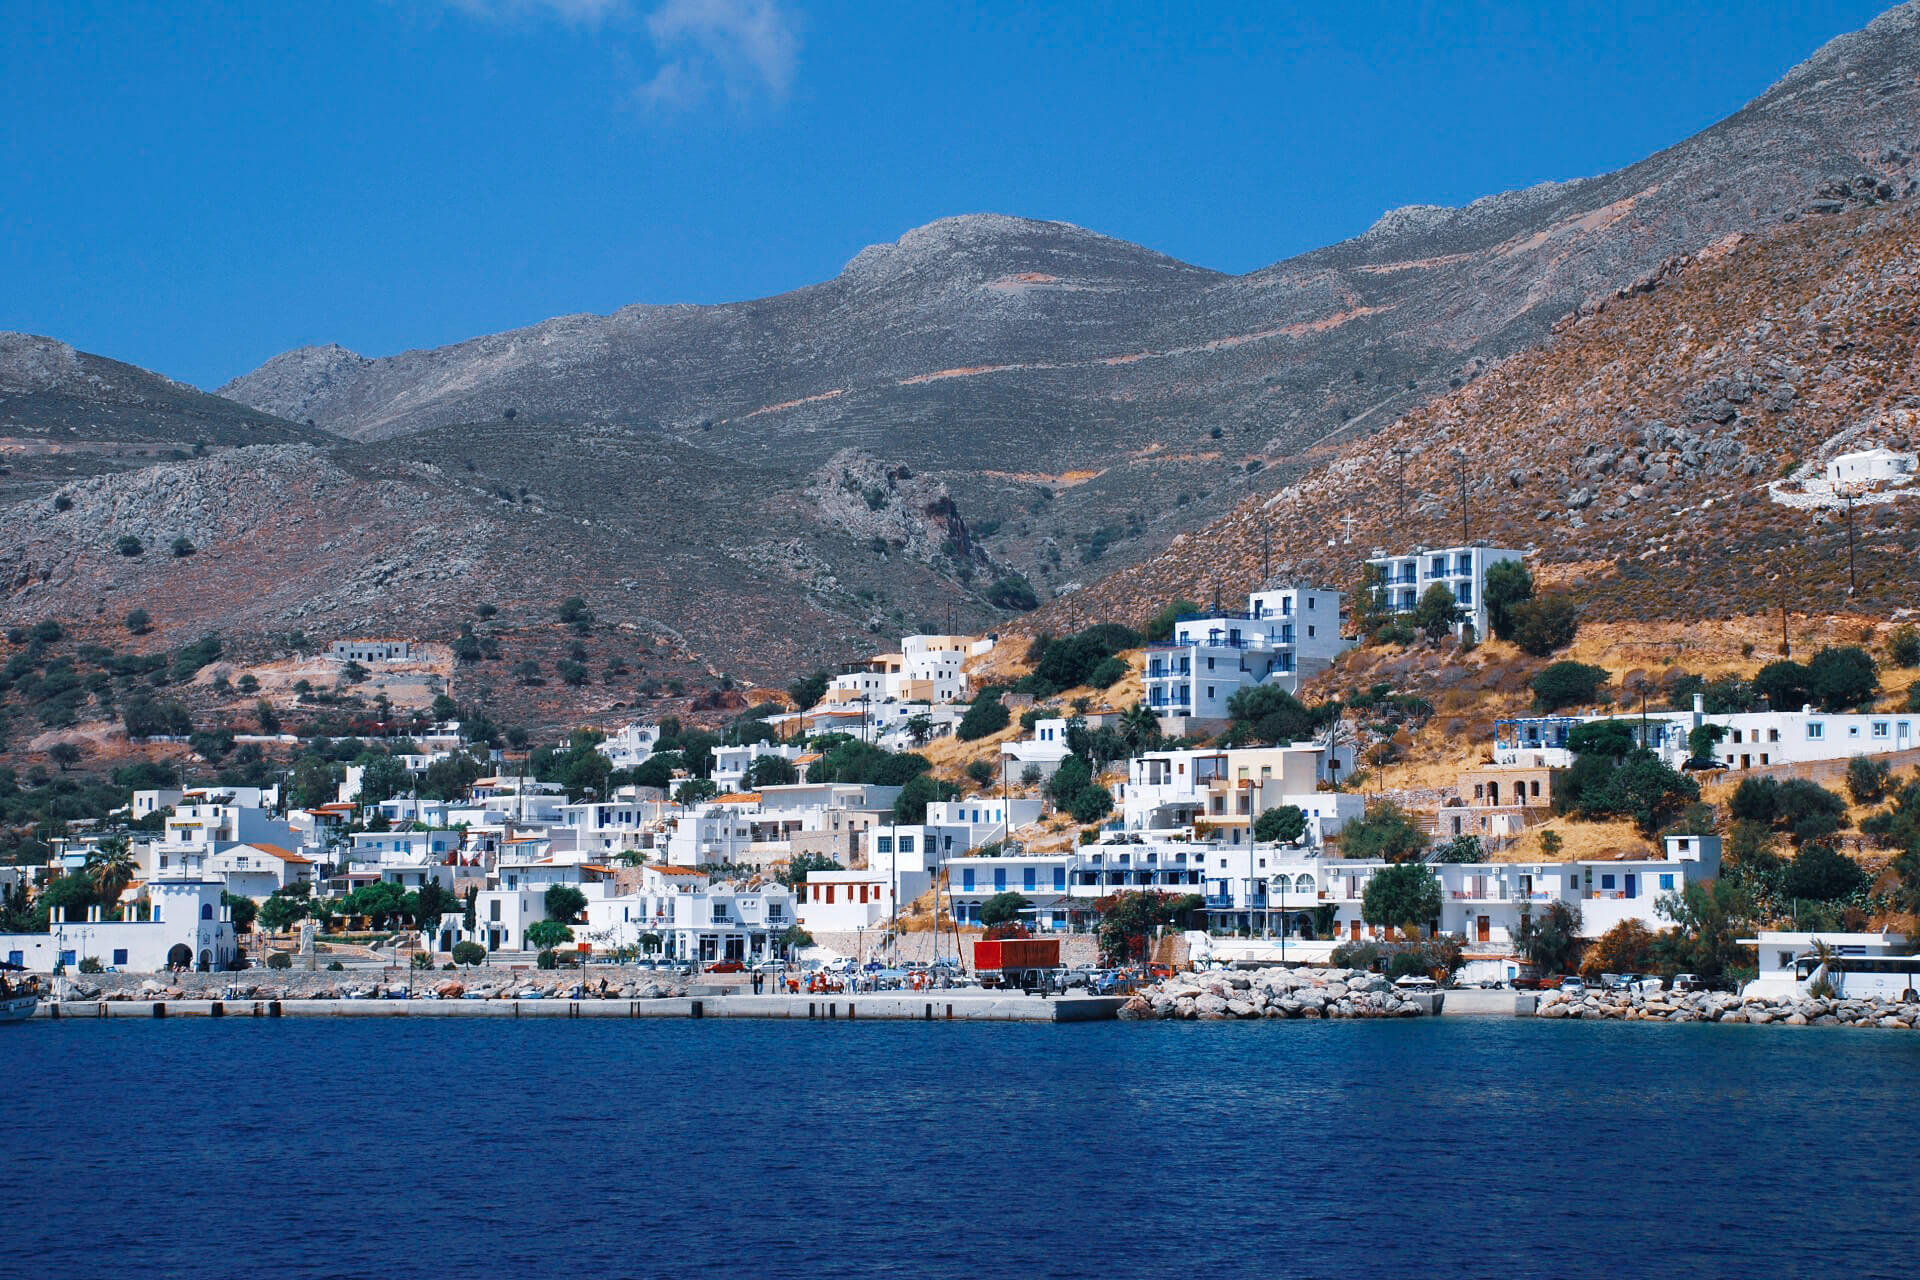 The island of TILOS is the best island to observe the wild world